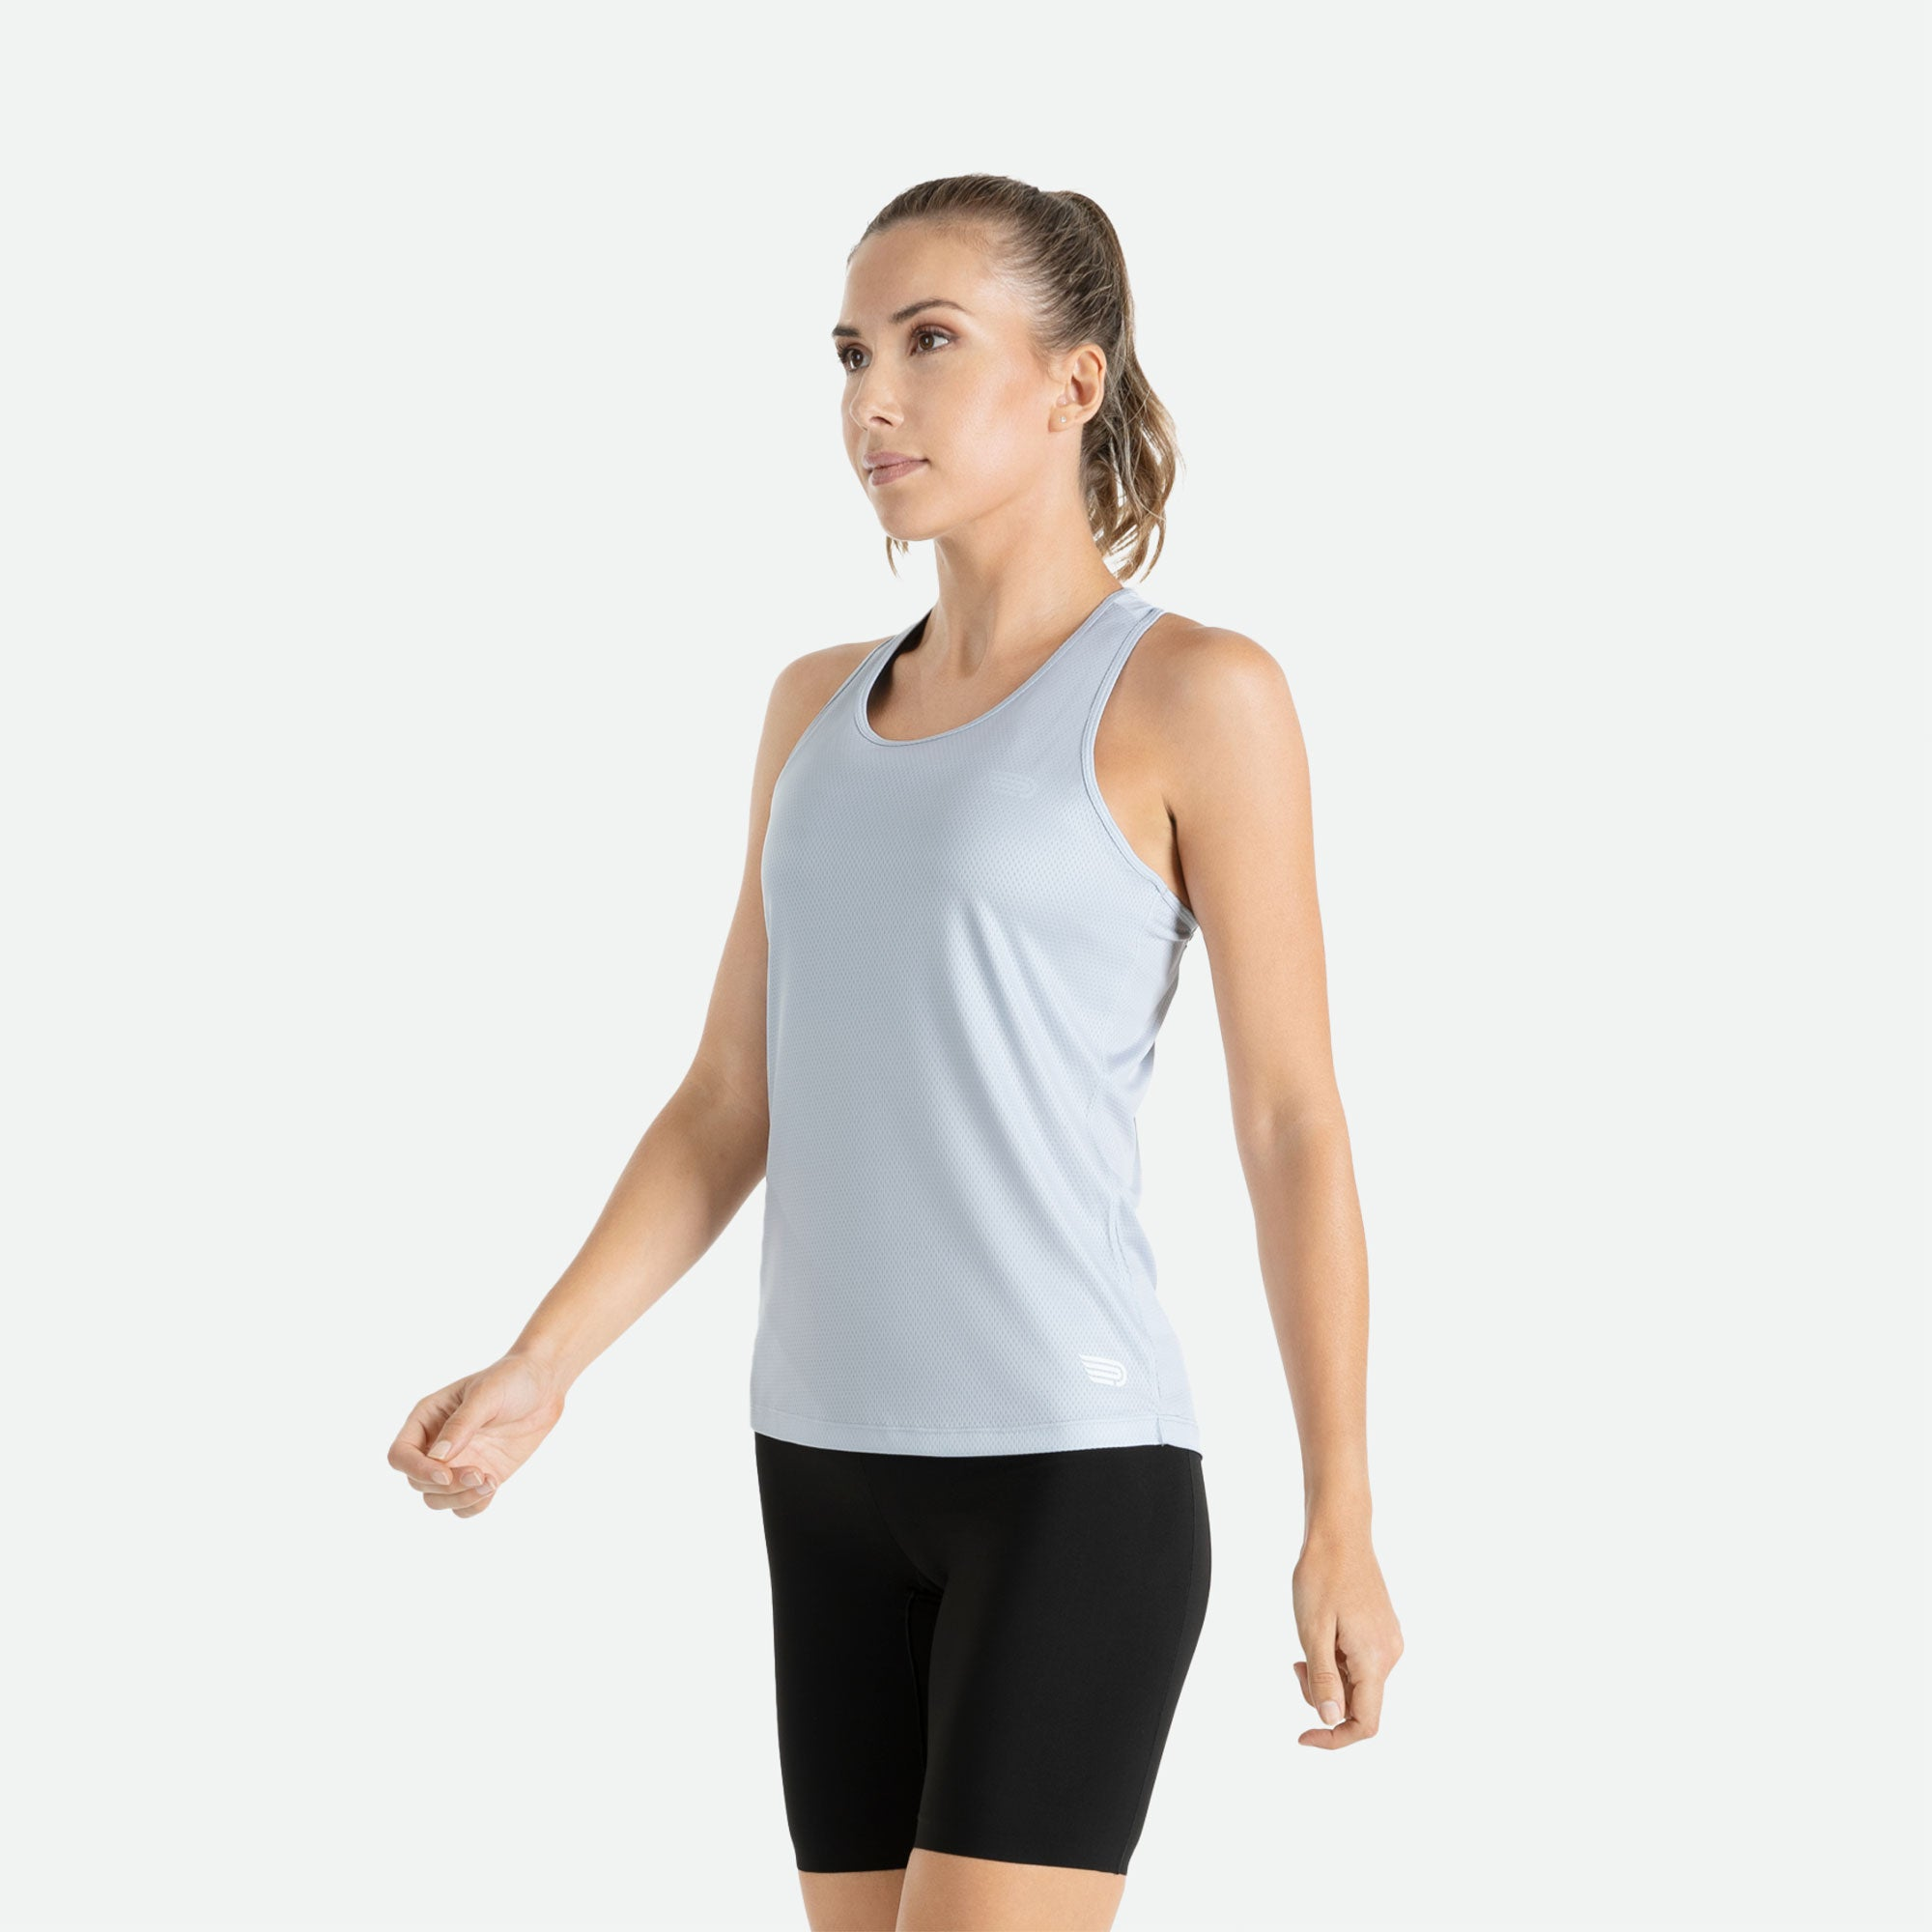 Our Pressio women's light grey Hāpai razorback singlet features EcoTECH MF fabric which has dual filament recycled polyester yarns from Unifi for superior moisture control to keep you dry.